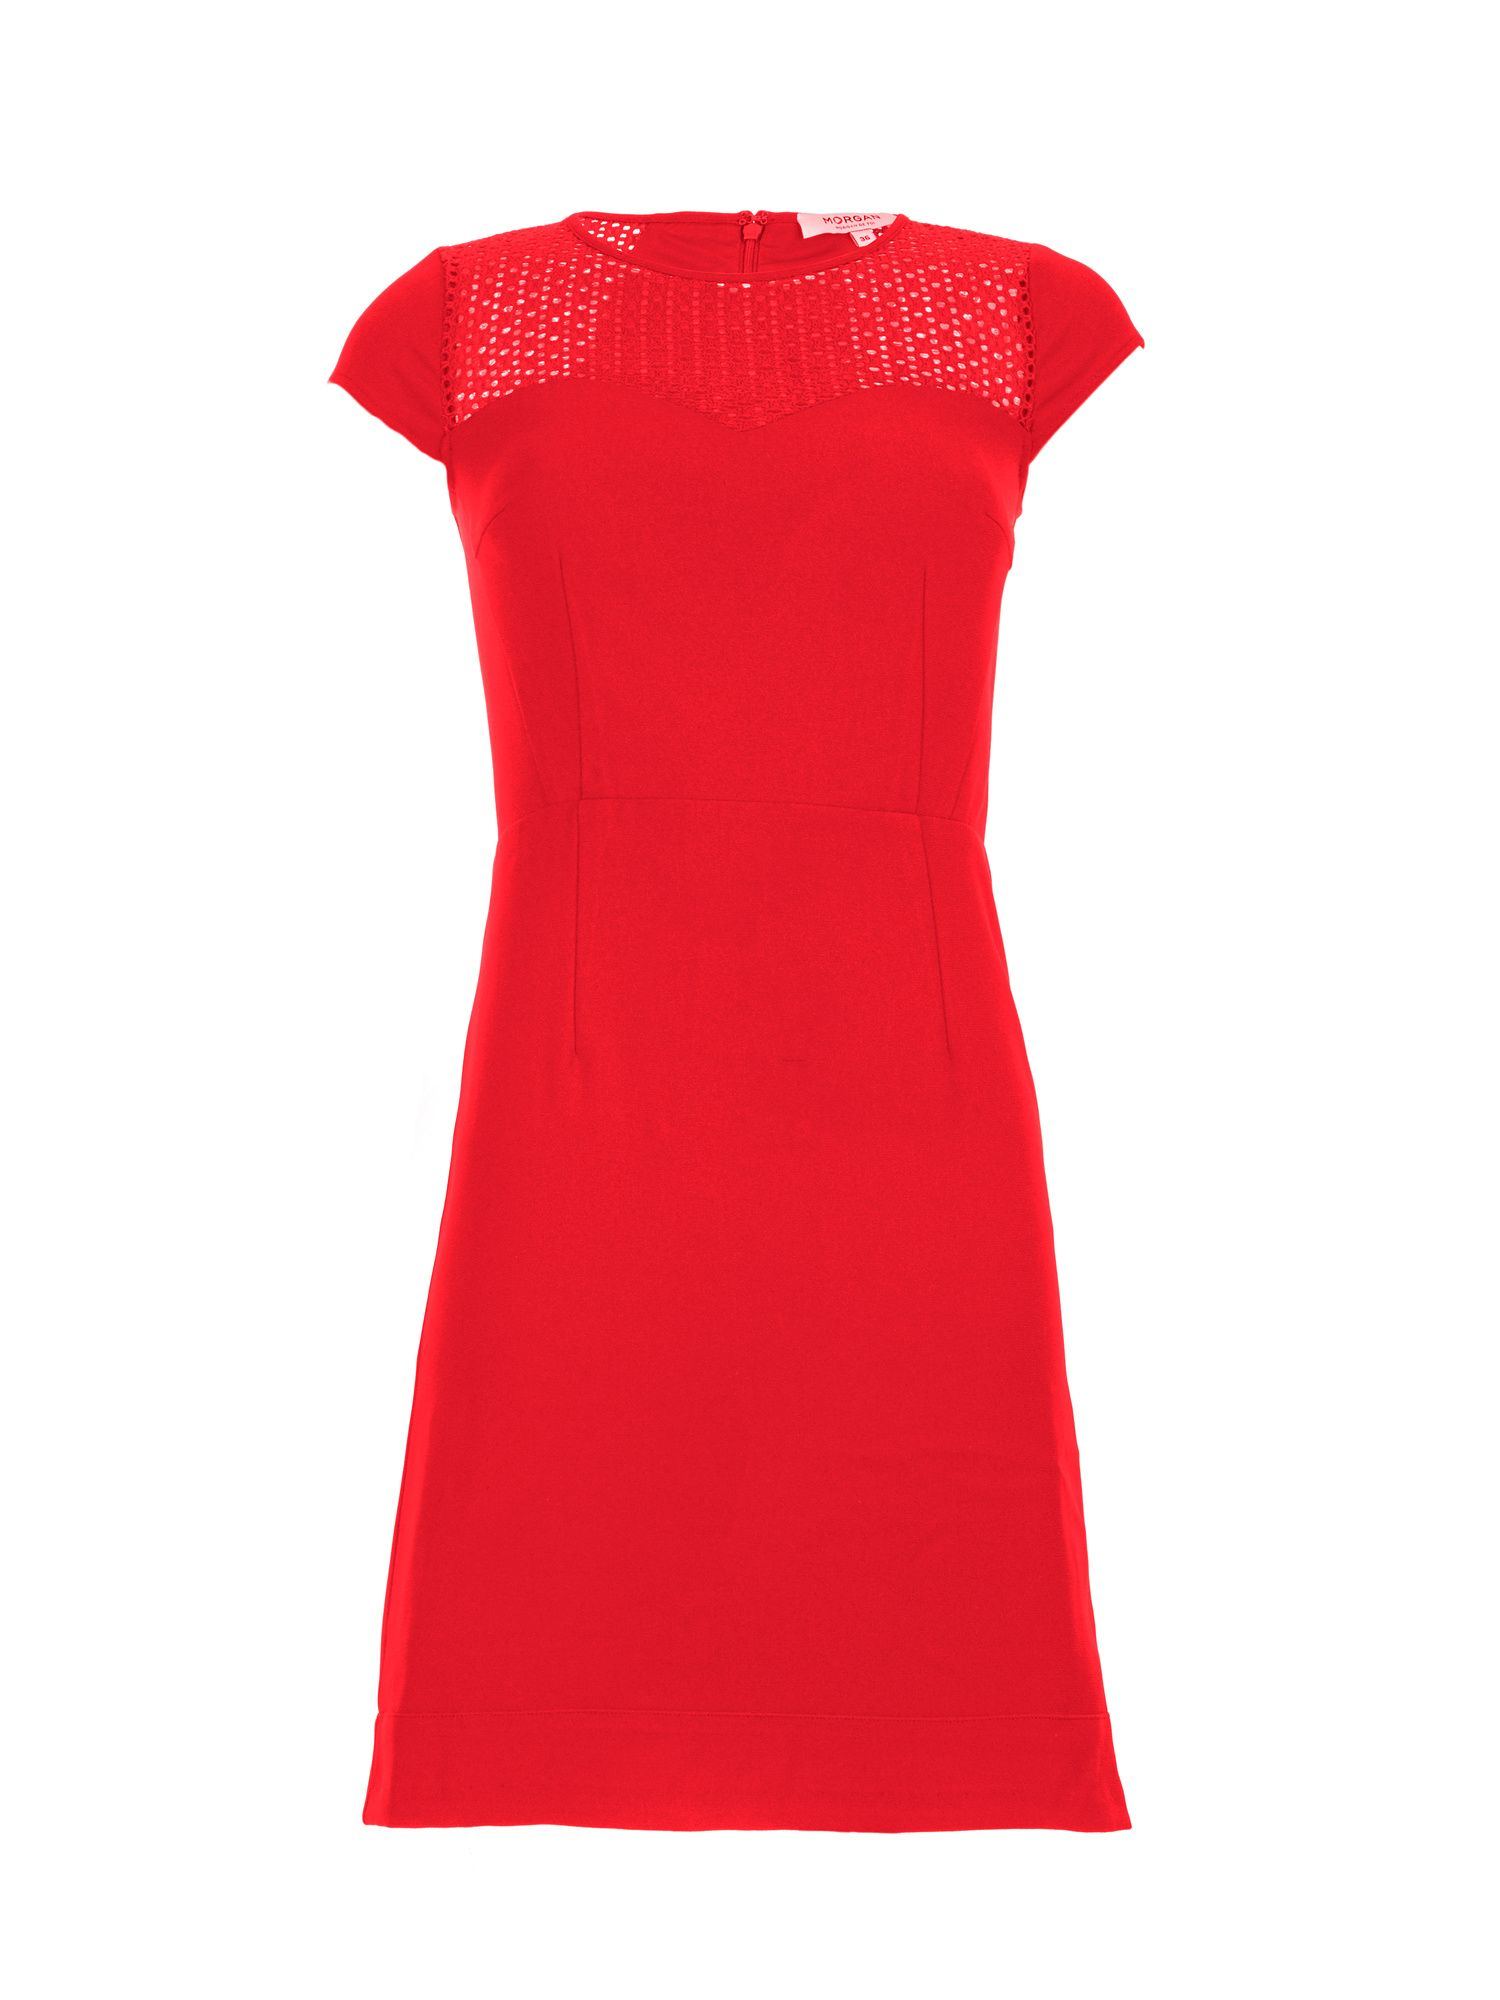 Morgan Openwork Knit And Crepe Dress, Red